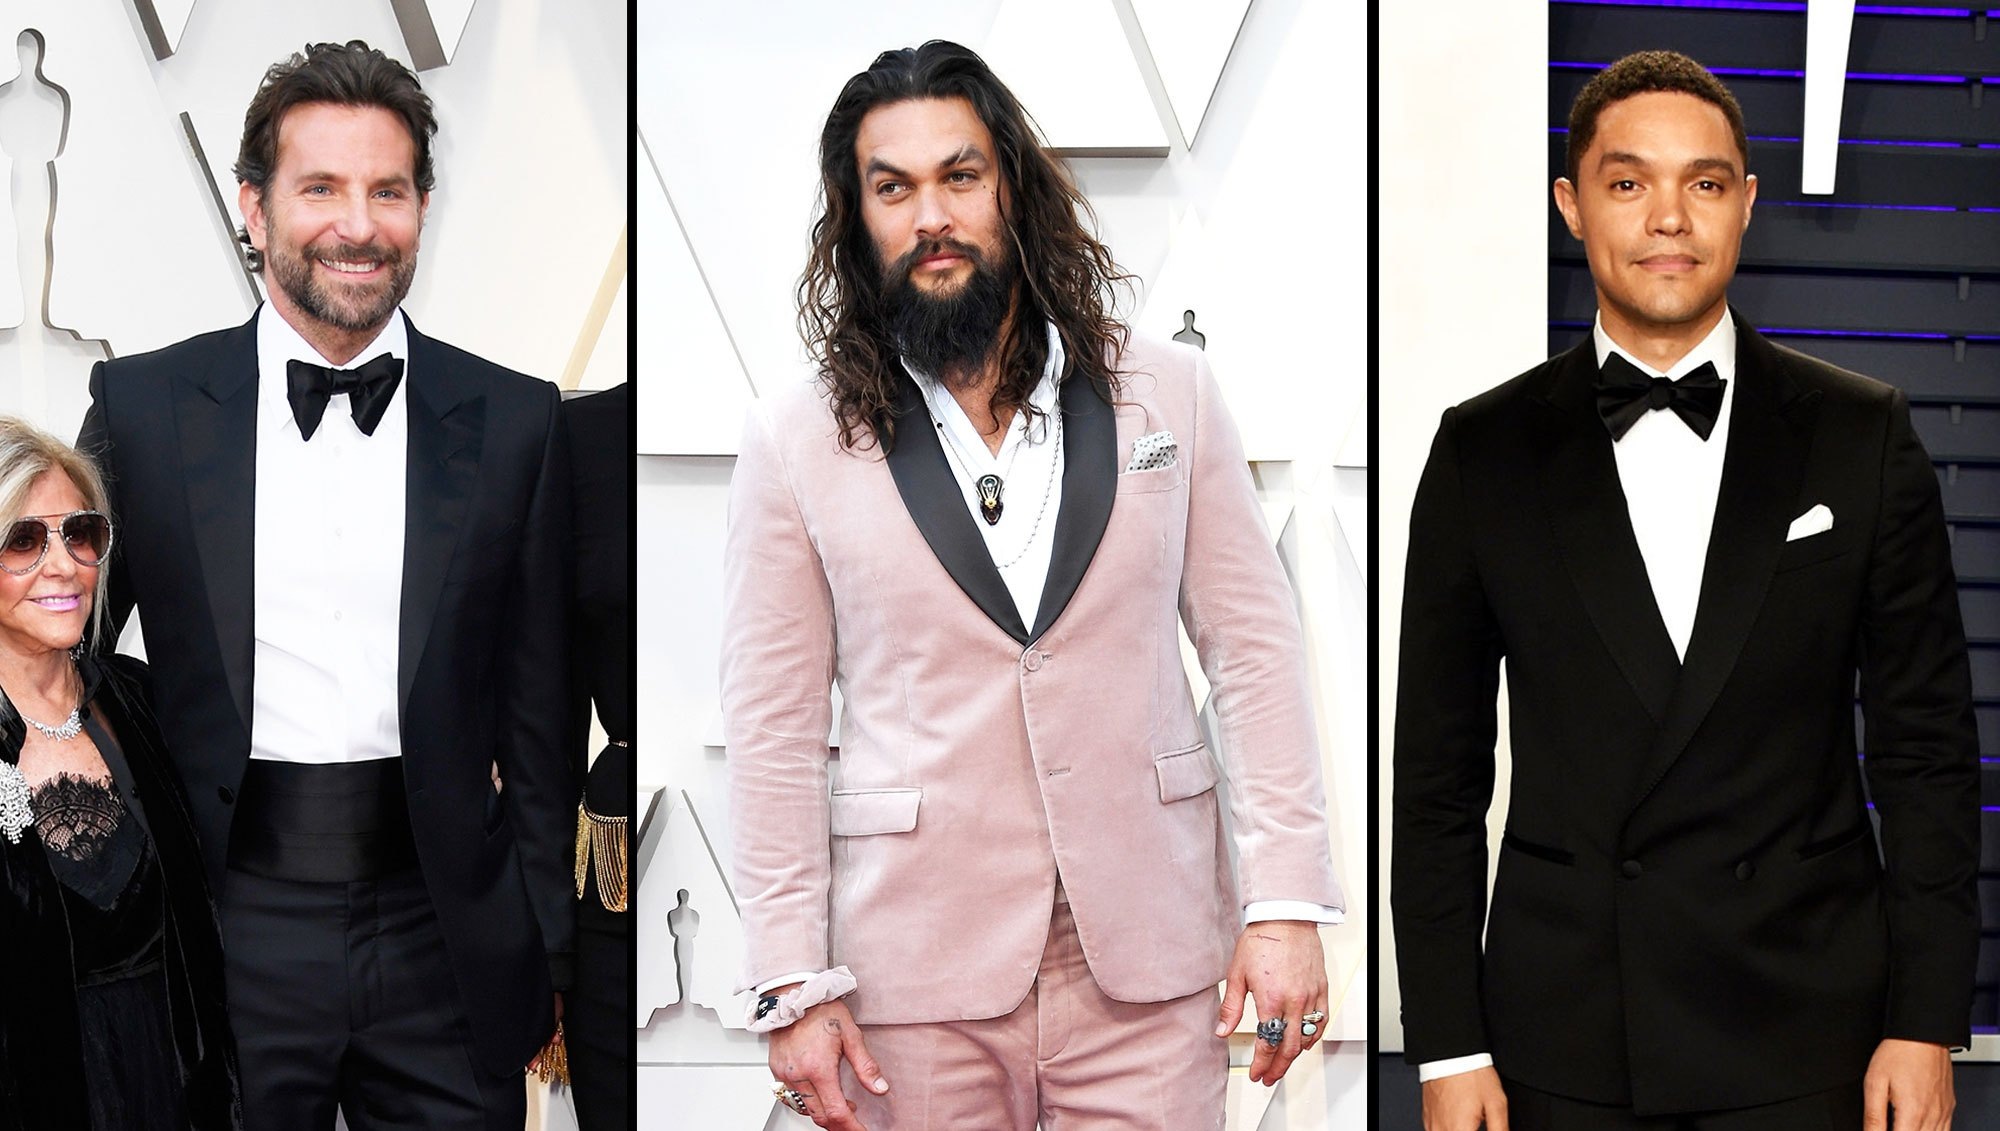 Bradley Cooper, Jason Momoa and Trevor Noah Hottest Hunks at the 2019 Oscars